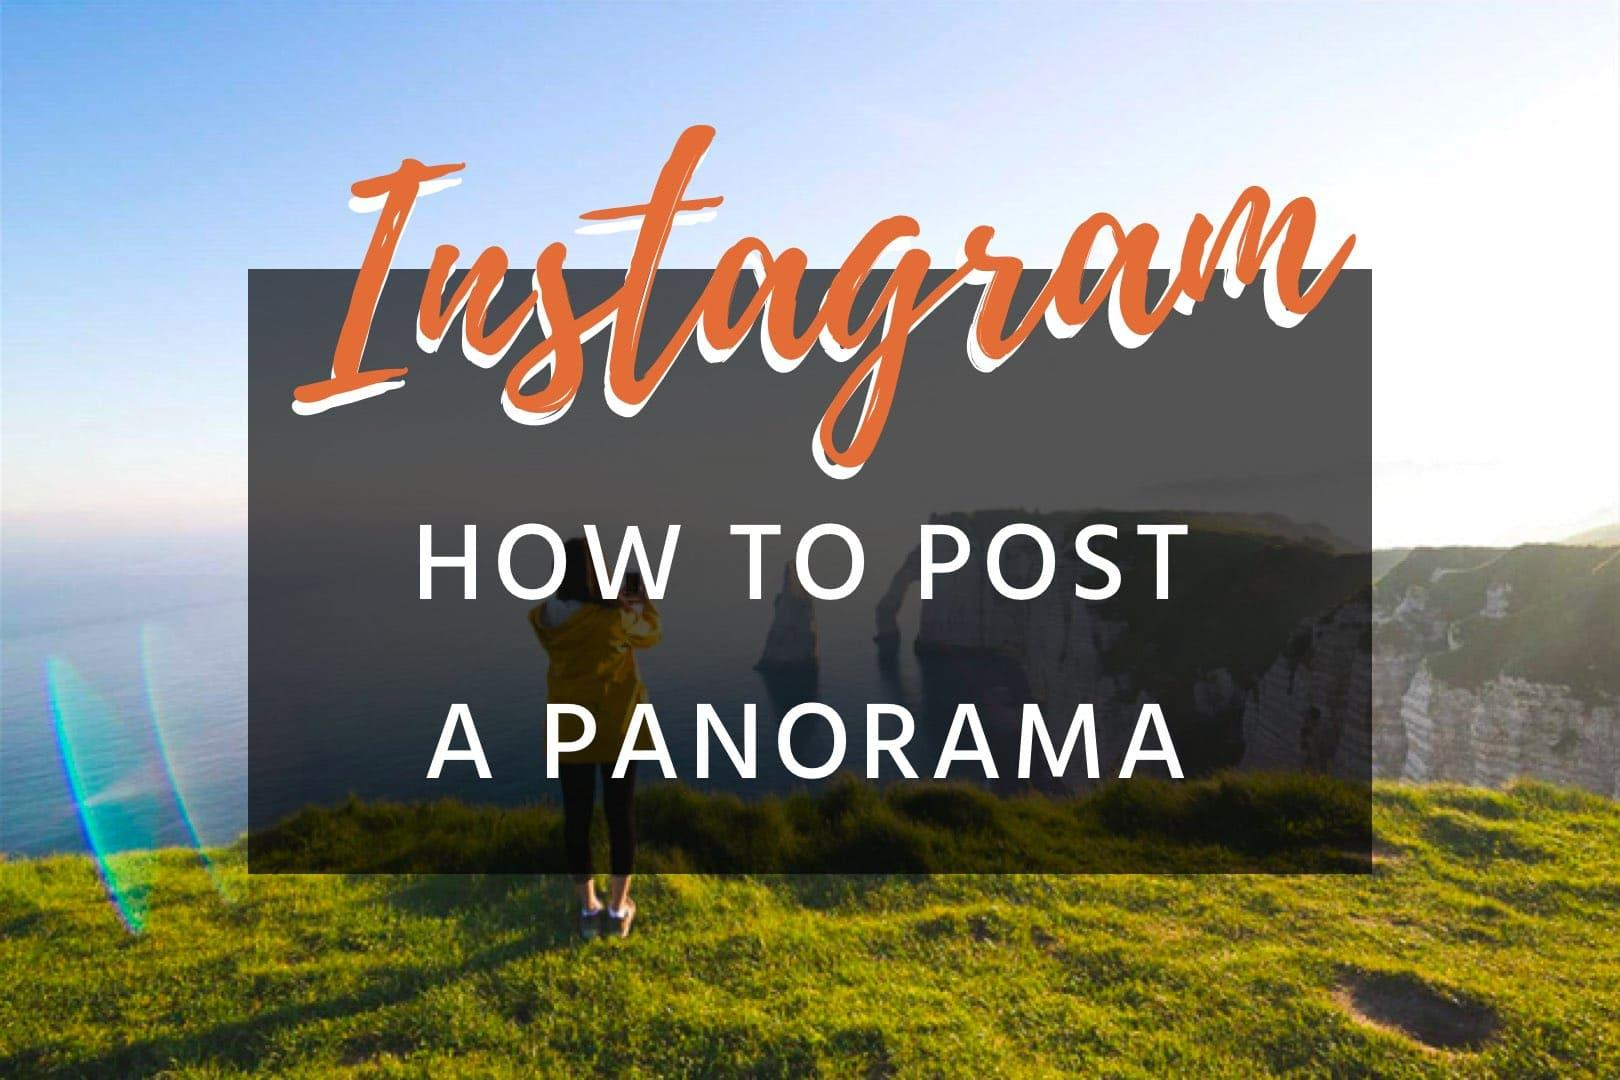 How to post a panorama for Instagram | Photoshop & Android | kevmrc com